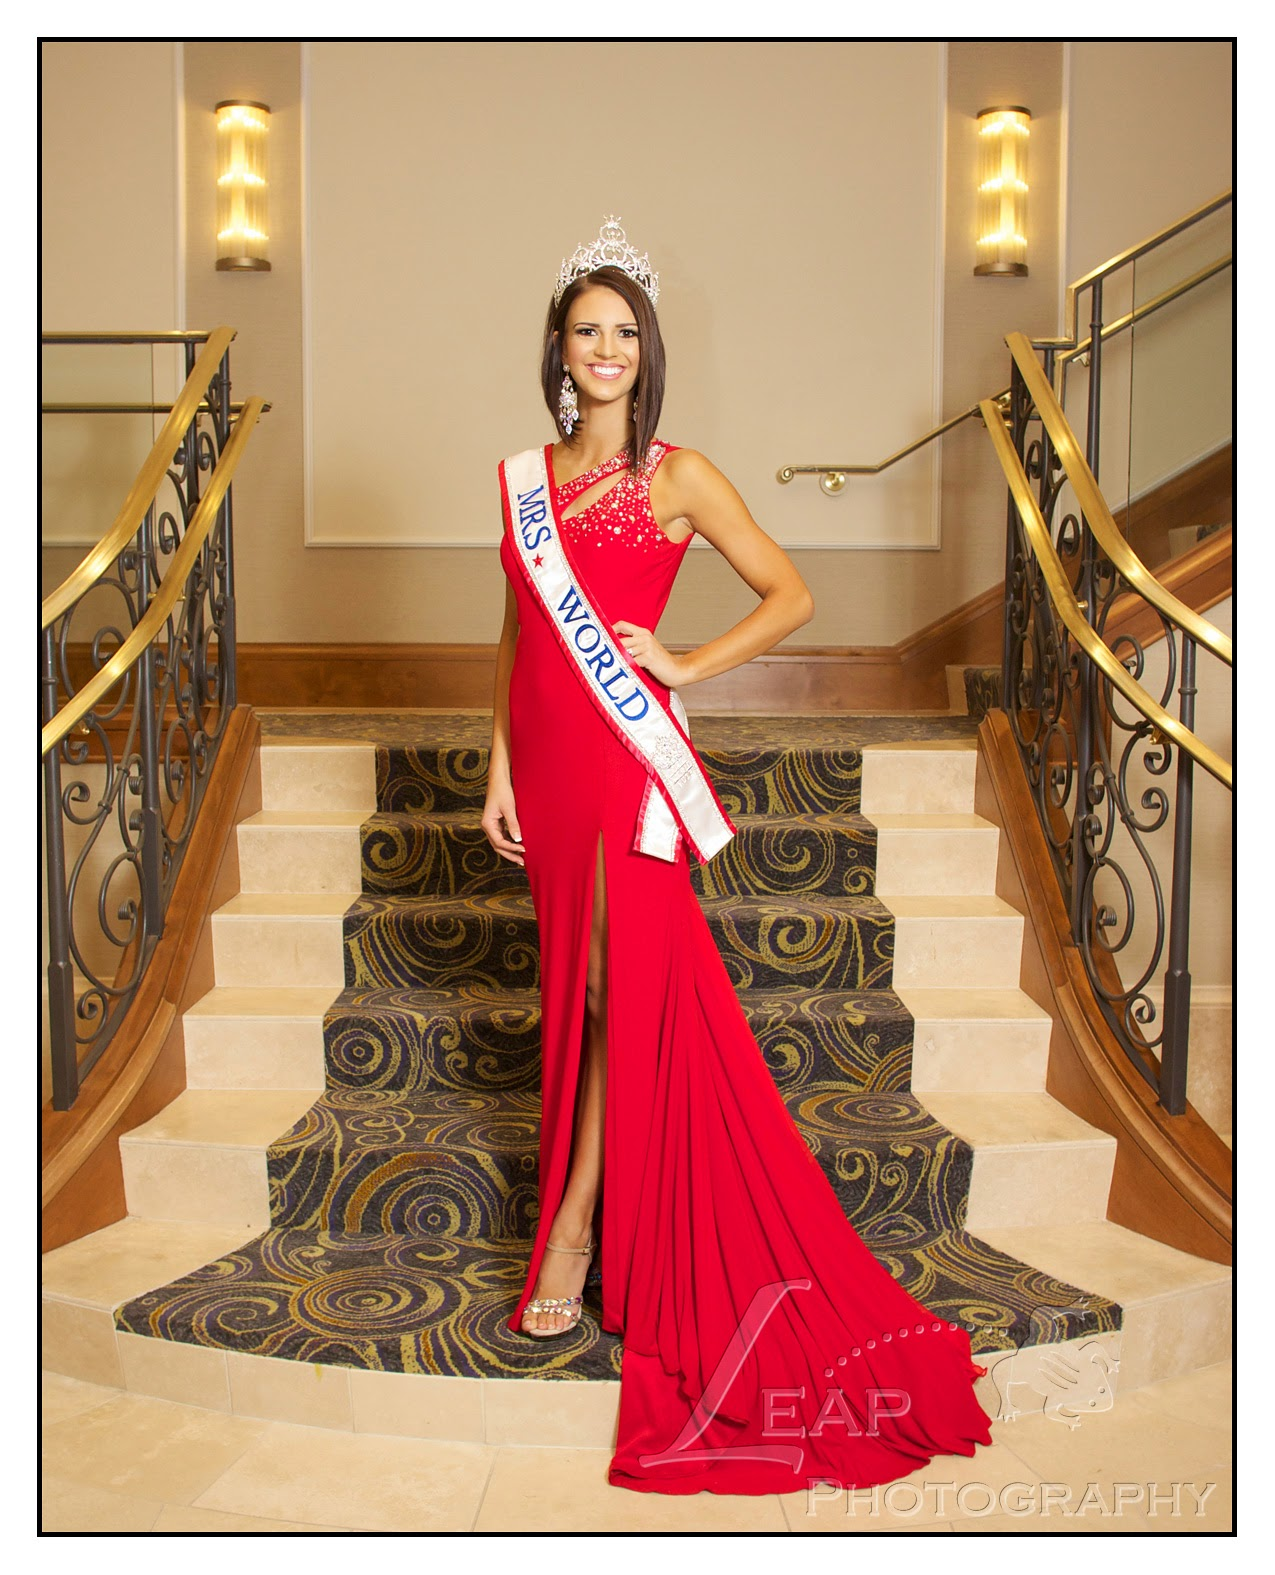 Mrs. World 2014 in formal gown